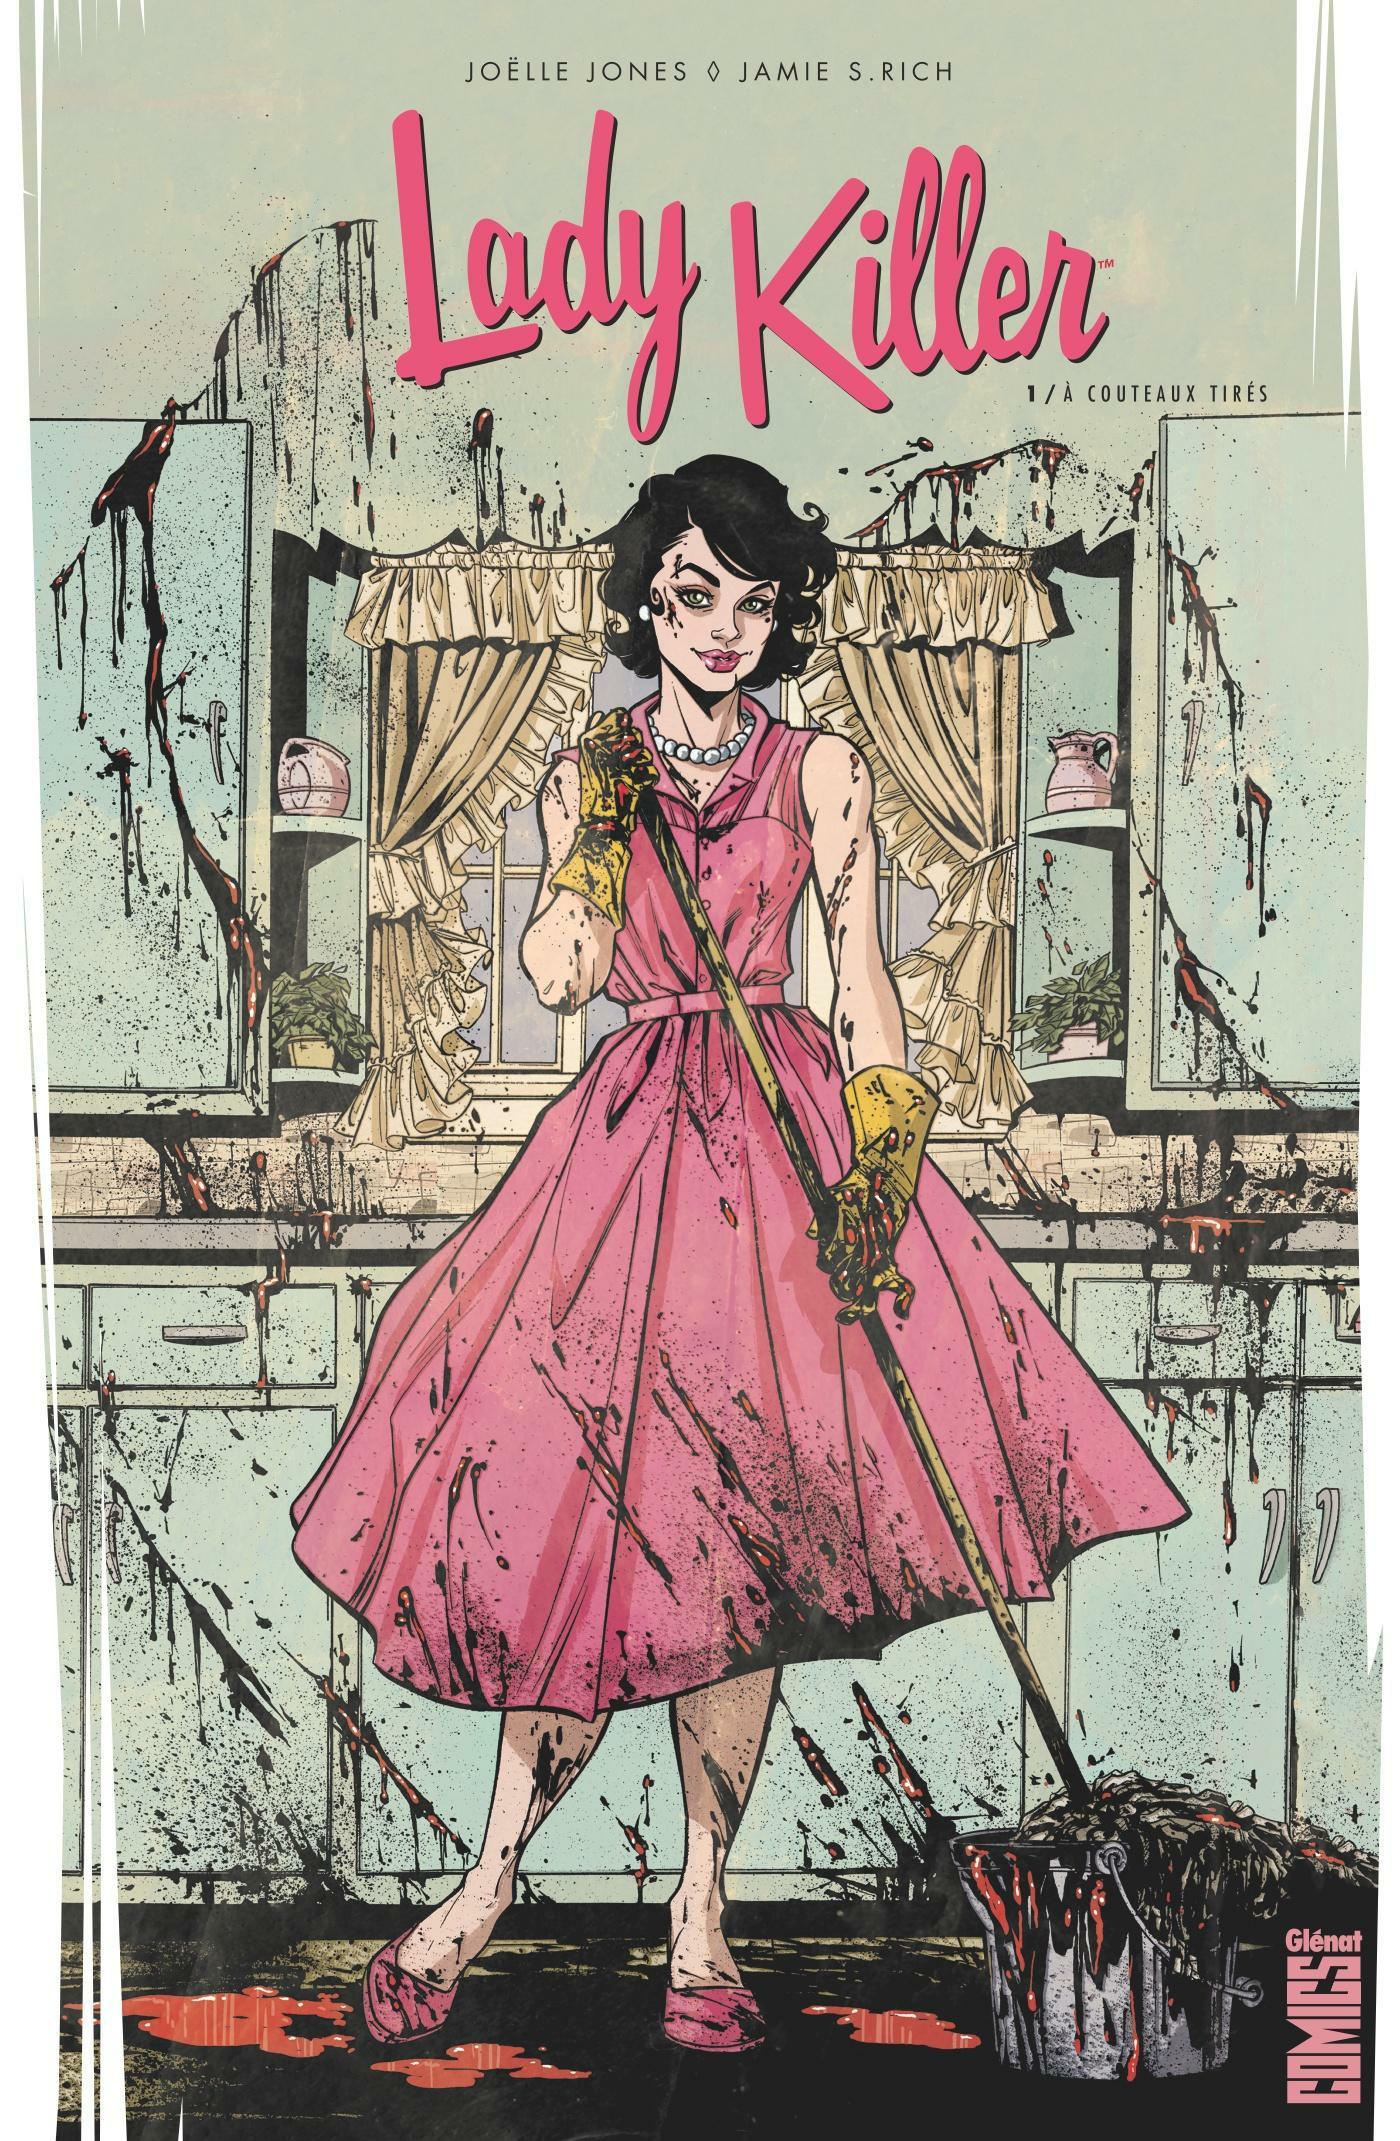 Lady killer T.1 ; à couteaux tirés  - Joelle Jones  - Jamie S. Rich